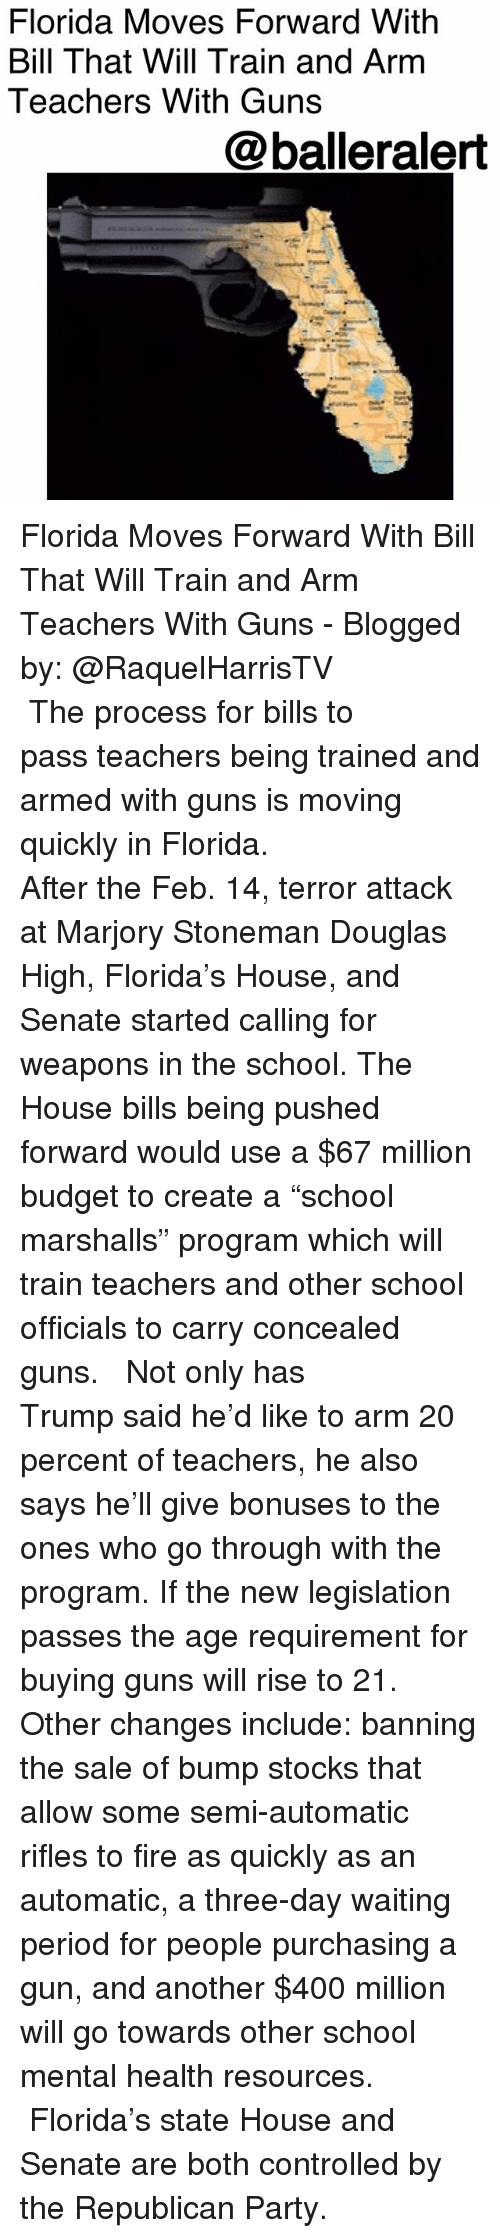 "Fire, Guns, and Memes: Florida Moves Forward With  Bill That Will Train and Arm  Teachers With Guns  @balleralert Florida Moves Forward With Bill That Will Train and Arm Teachers With Guns - Blogged by: @RaquelHarrisTV ⠀⠀⠀⠀⠀⠀⠀⠀⠀ ⠀⠀⠀⠀⠀⠀⠀⠀⠀ The process for bills to pass teachers being trained and armed with guns is moving quickly in Florida. ⠀⠀⠀⠀⠀⠀⠀⠀⠀ ⠀⠀⠀⠀⠀⠀⠀⠀⠀ After the Feb. 14, terror attack at Marjory Stoneman Douglas High, Florida's House, and Senate started calling for weapons in the school. The House bills being pushed forward would use a $67 million budget to create a ""school marshalls"" program which will train teachers and other school officials to carry concealed guns. ⠀⠀⠀⠀⠀⠀⠀⠀⠀ ⠀⠀⠀⠀⠀⠀⠀⠀⠀ Not only has Trump said he'd like to arm 20 percent of teachers, he also says he'll give bonuses to the ones who go through with the program. If the new legislation passes the age requirement for buying guns will rise to 21. Other changes include: banning the sale of bump stocks that allow some semi-automatic rifles to fire as quickly as an automatic, a three-day waiting period for people purchasing a gun, and another $400 million will go towards other school mental health resources. ⠀⠀⠀⠀⠀⠀⠀⠀⠀ ⠀⠀⠀⠀⠀⠀⠀⠀⠀ Florida's state House and Senate are both controlled by the Republican Party."